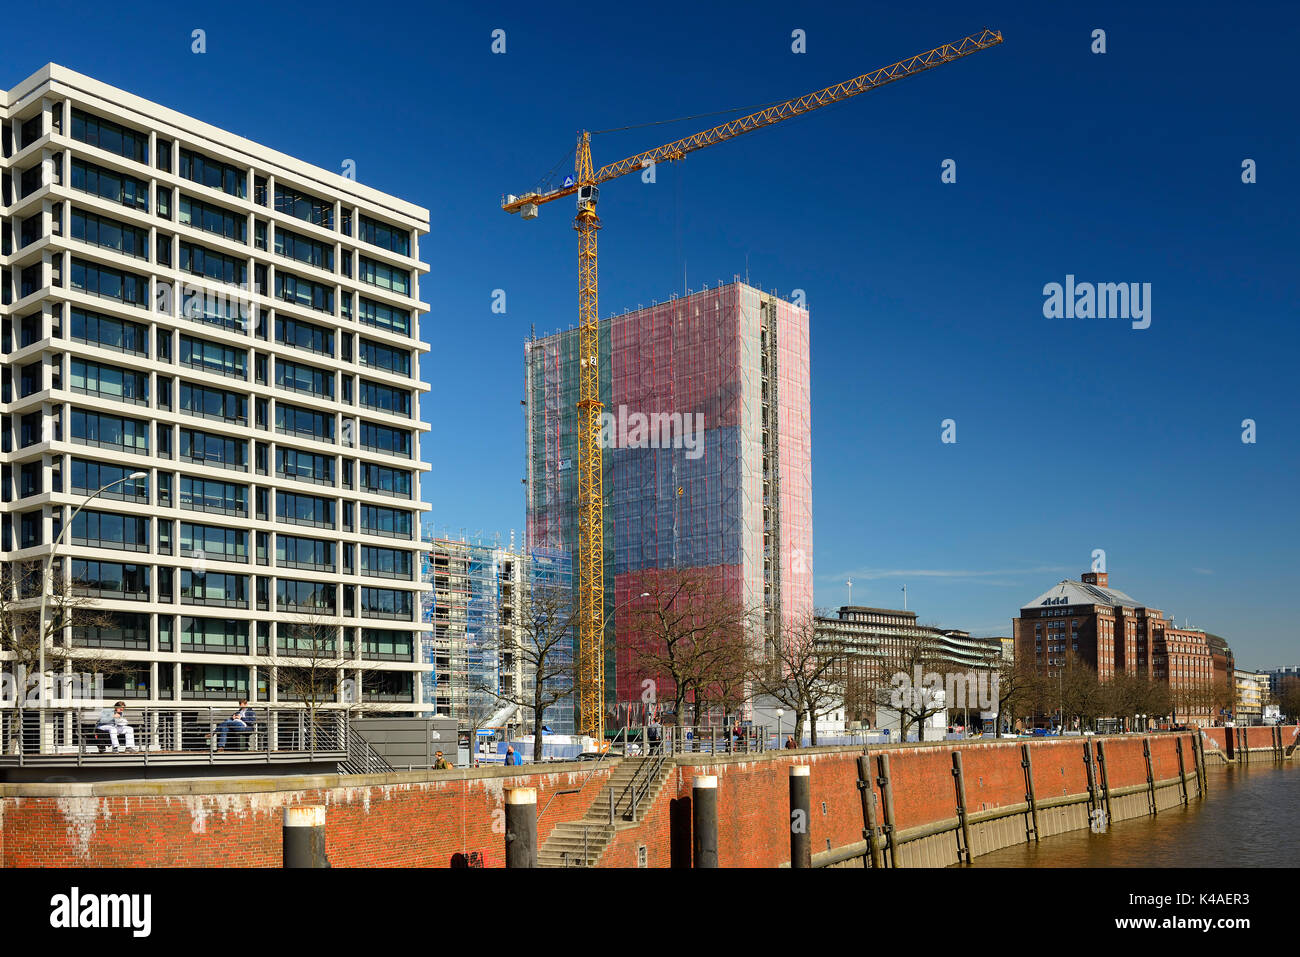 Reconstruction Of The Former Spiegel Publishing House In Hamburg, Germany - Stock Image